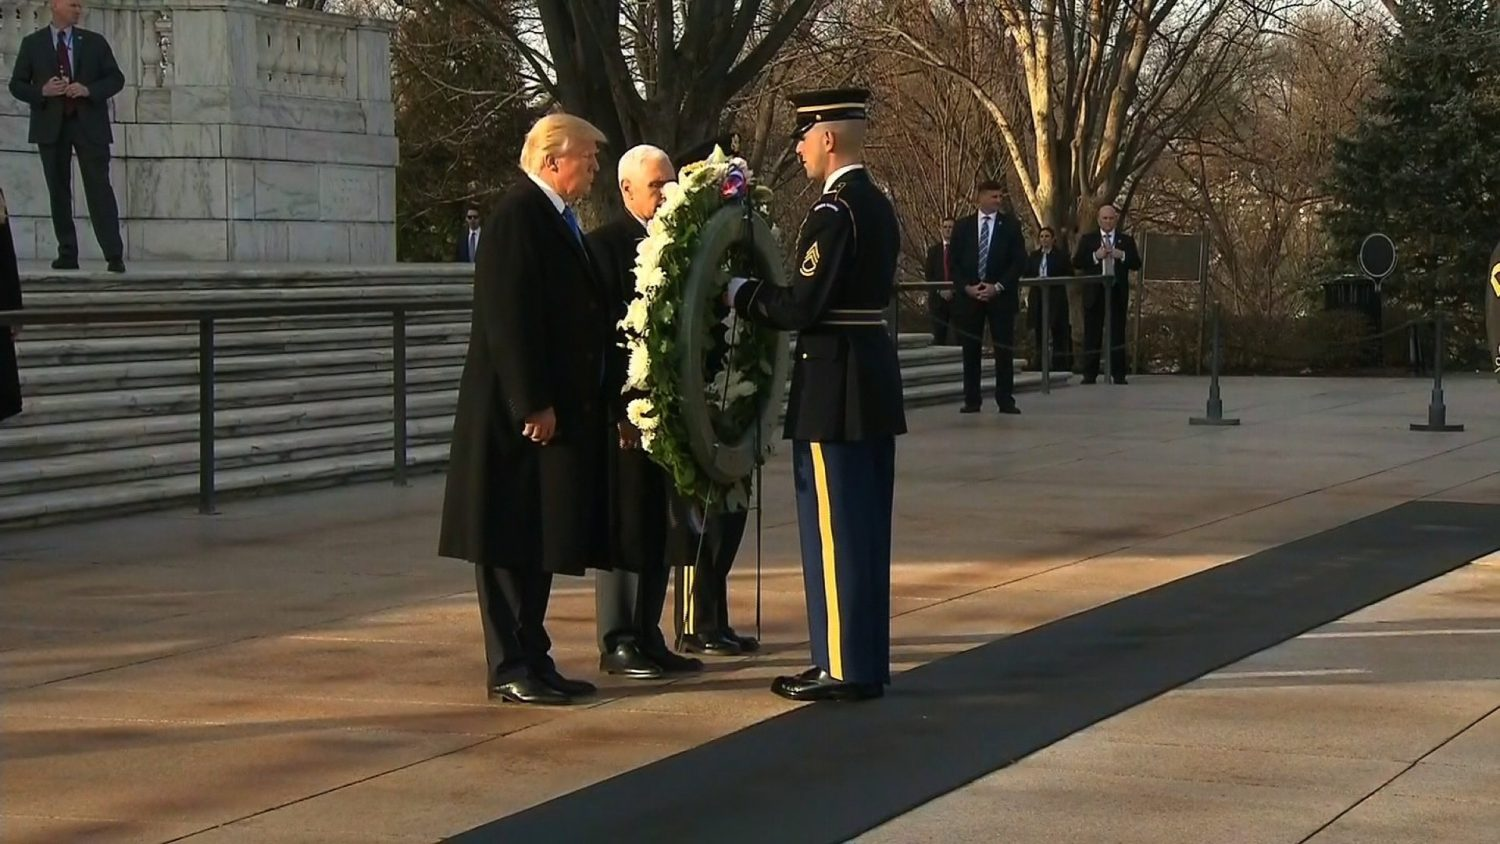 Donald Trump placed the wreath at Arlington National Cemetery in one of the kick-off ceremonial events in advance of his inauguration at the Capitol on Friday. Flanked by Mike Pence and standing before his children and families, Trump laid the wreath at the Tomb of the Unknowns in Arlington, Virginia.